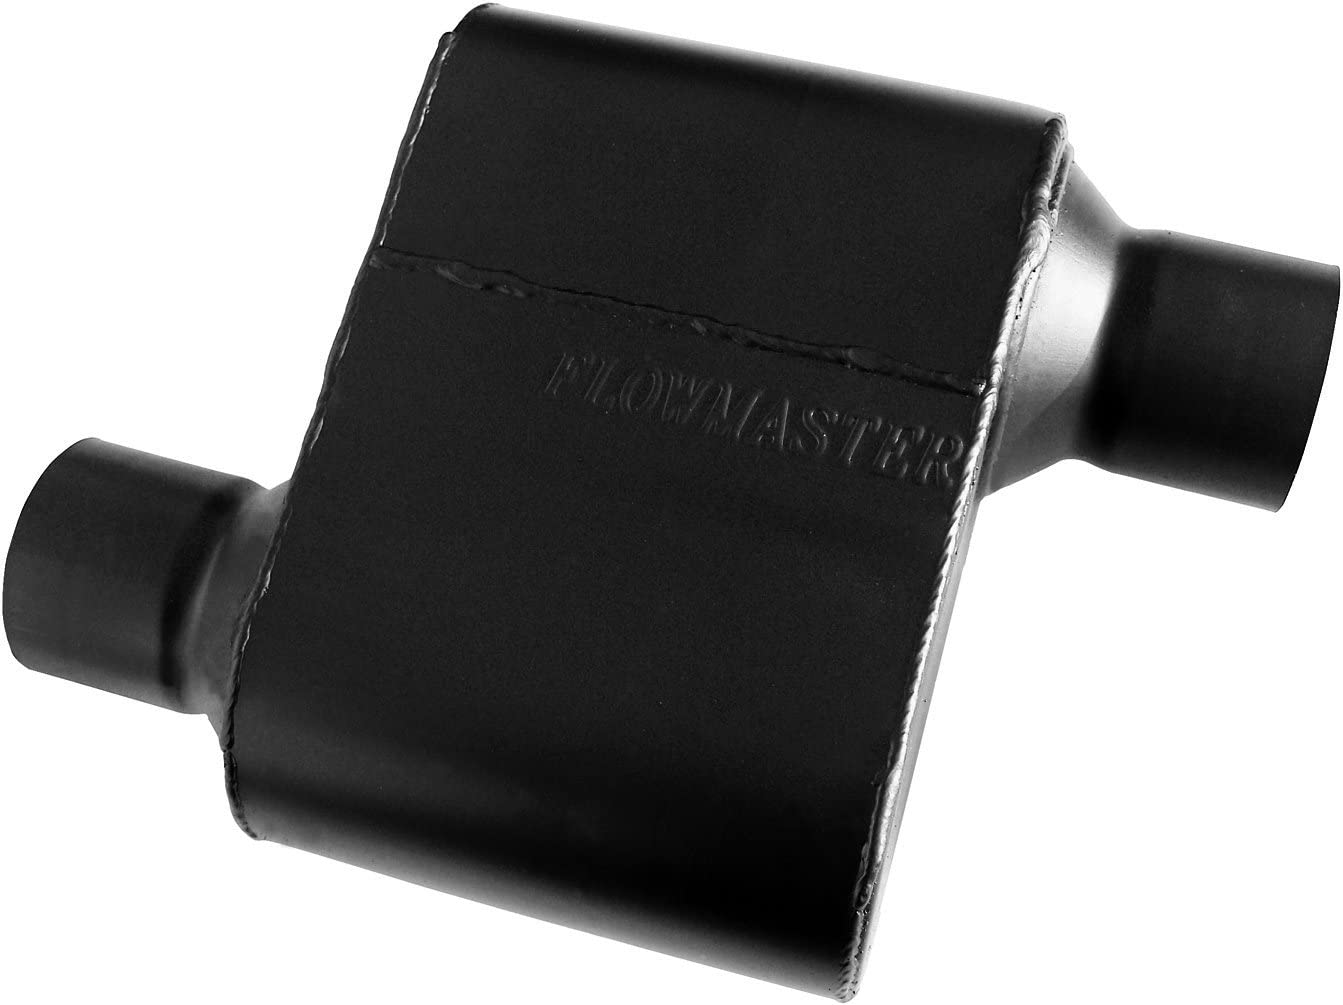 Flowmaster 842518 Super 10 Muffler 409S - 2.50 Offset IN / 2.50 Offset OUT - Aggressive Sound,Black